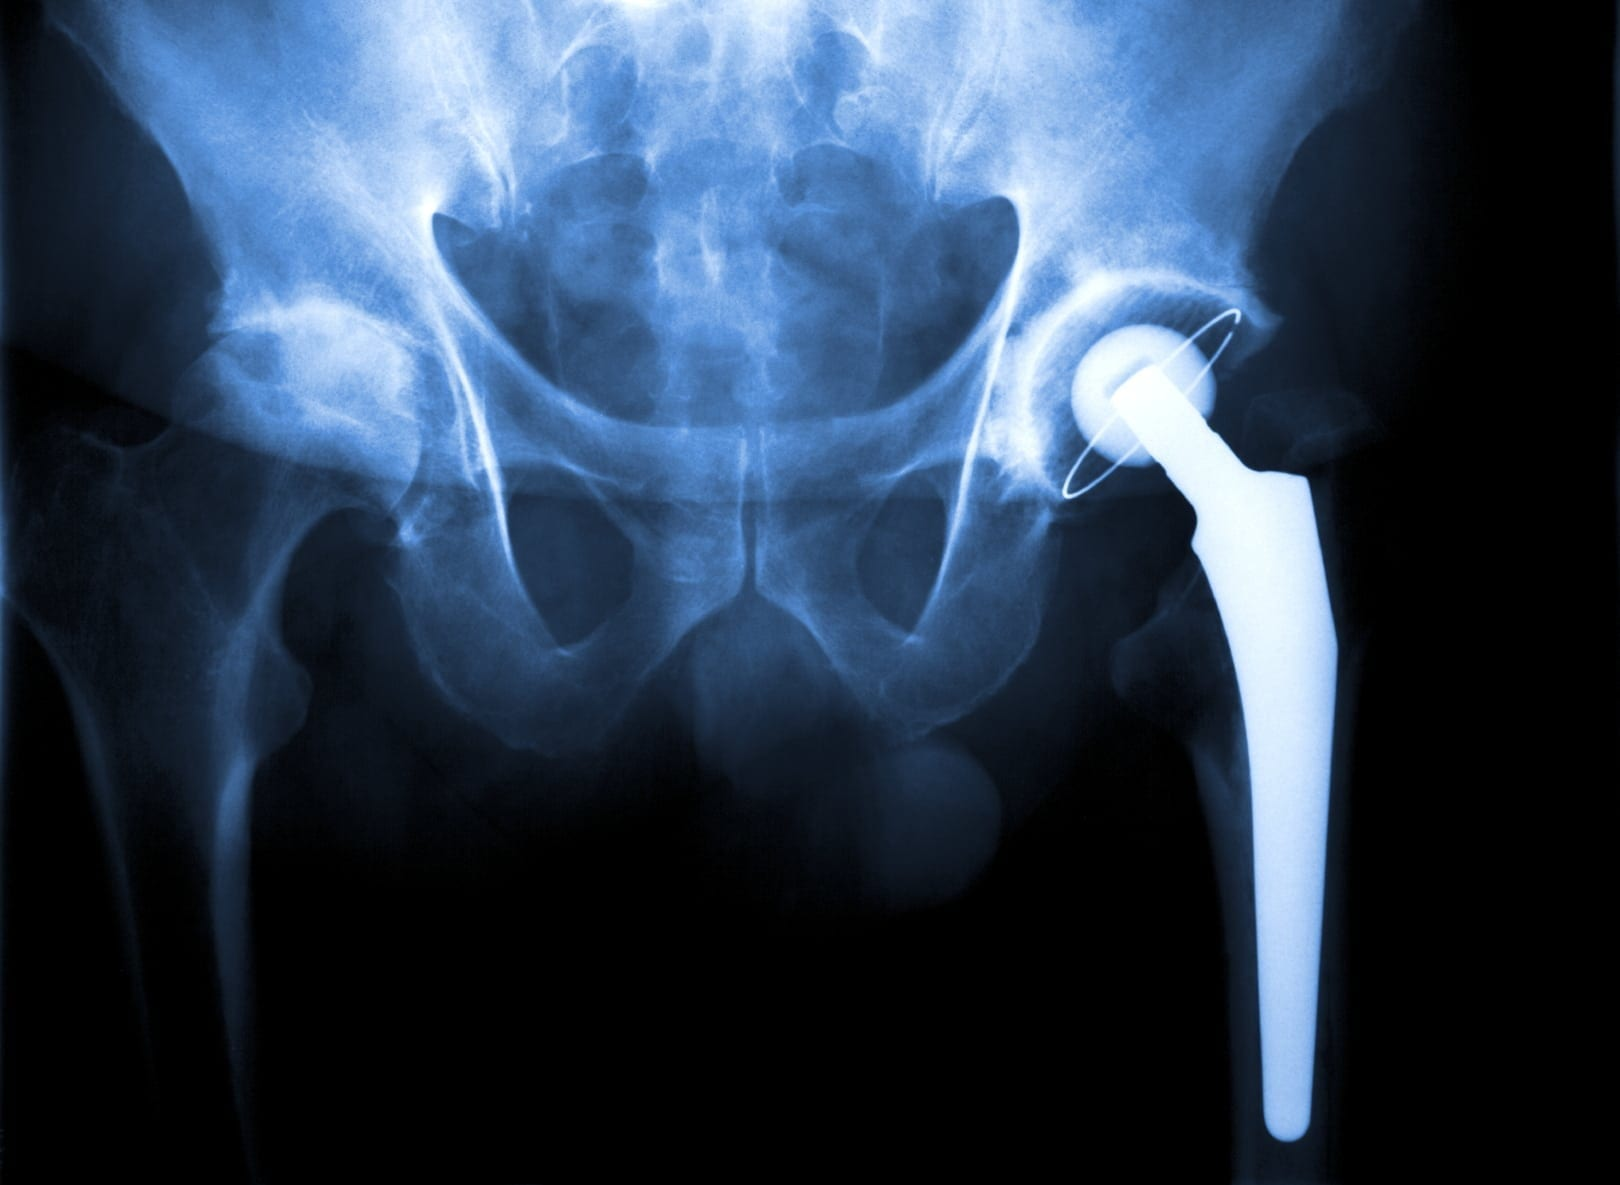 Wright Hip replacement - Goldwater Law Firm